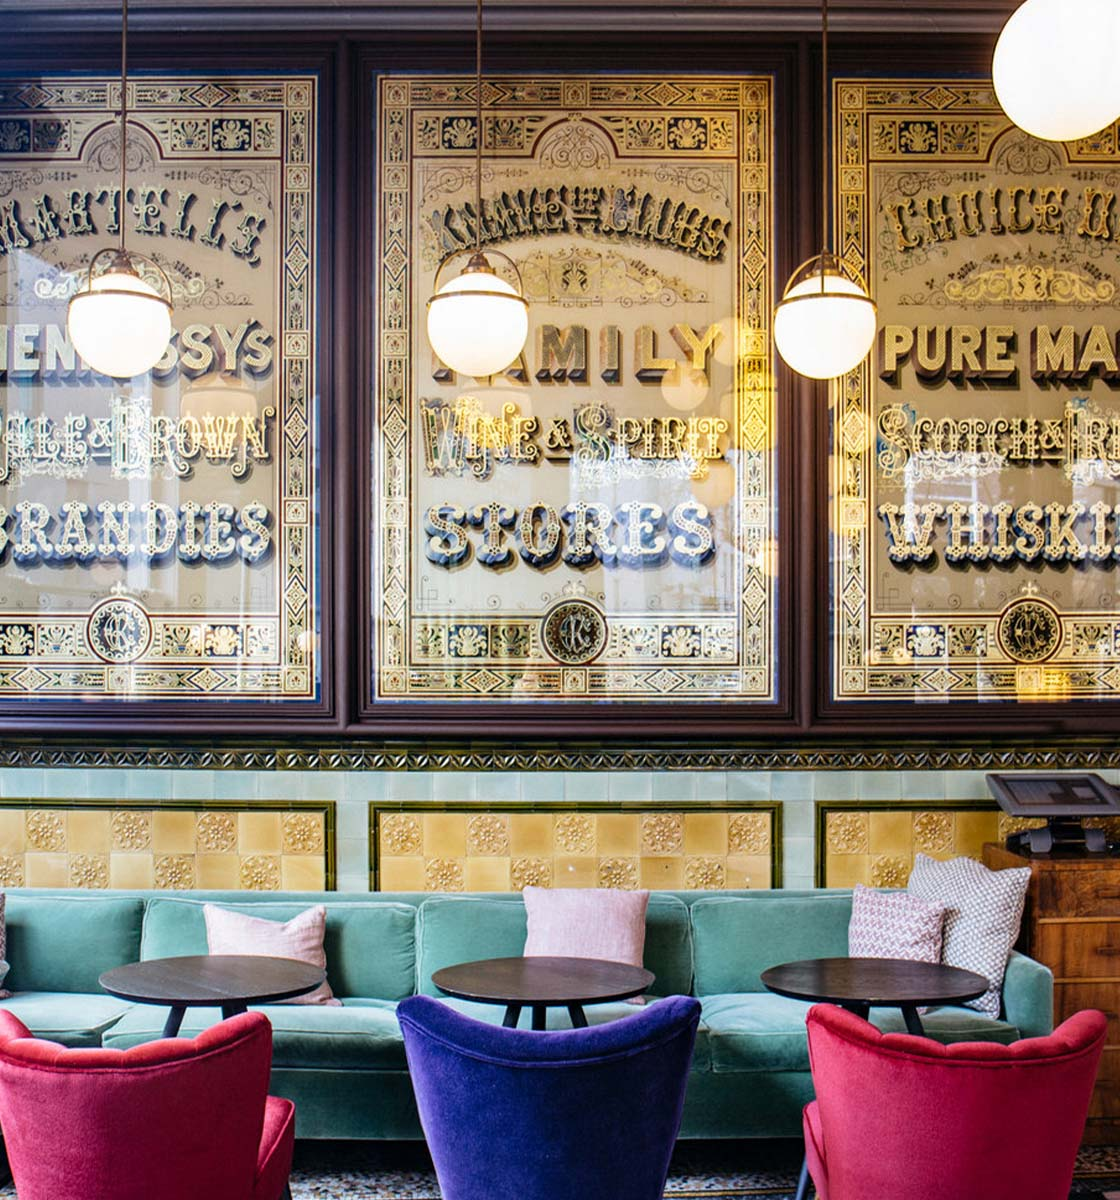 Colourful chairs and sofa in french style restaurant